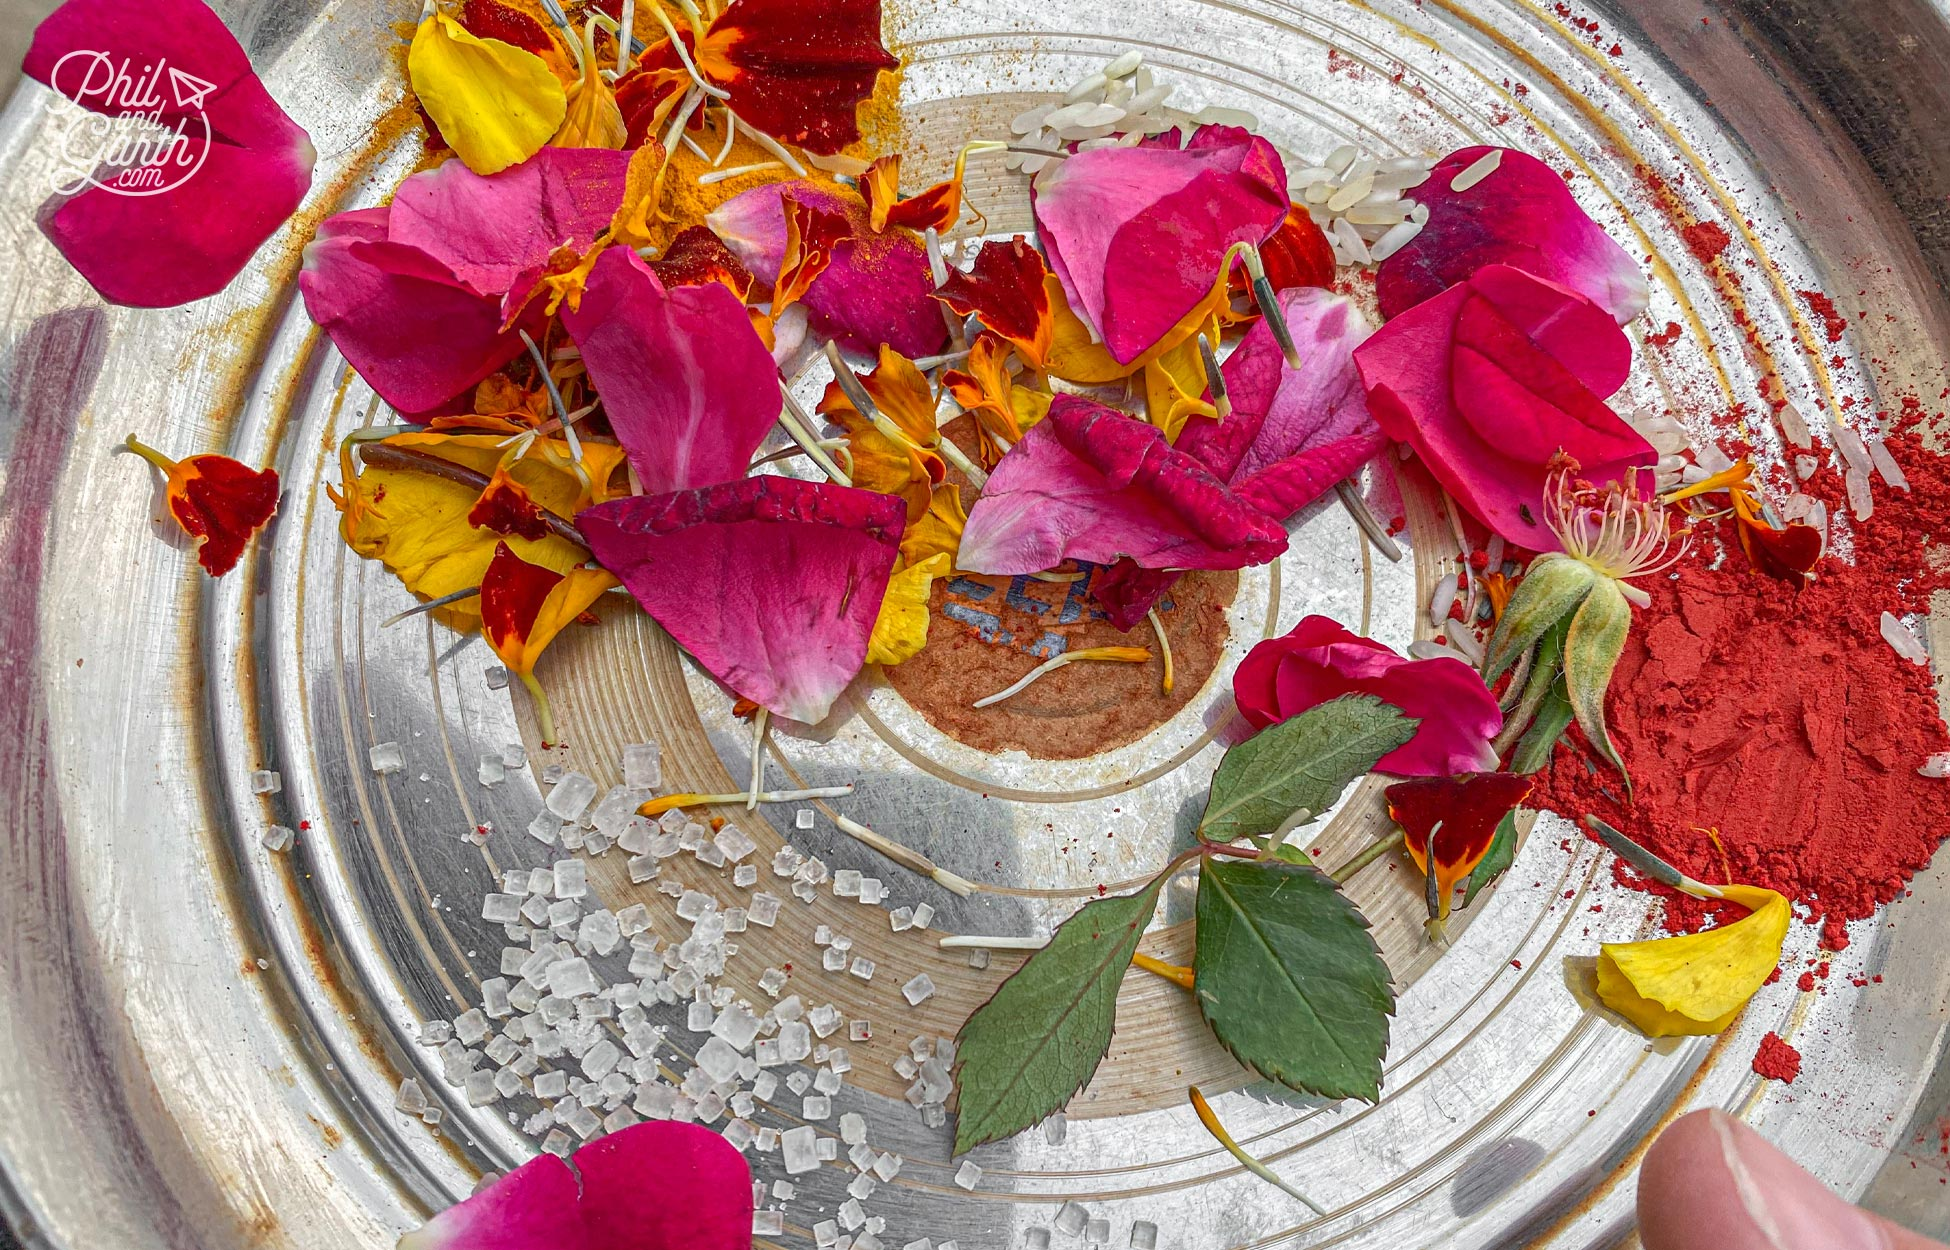 Our tray of offerings included rice grains, spices and rose petals